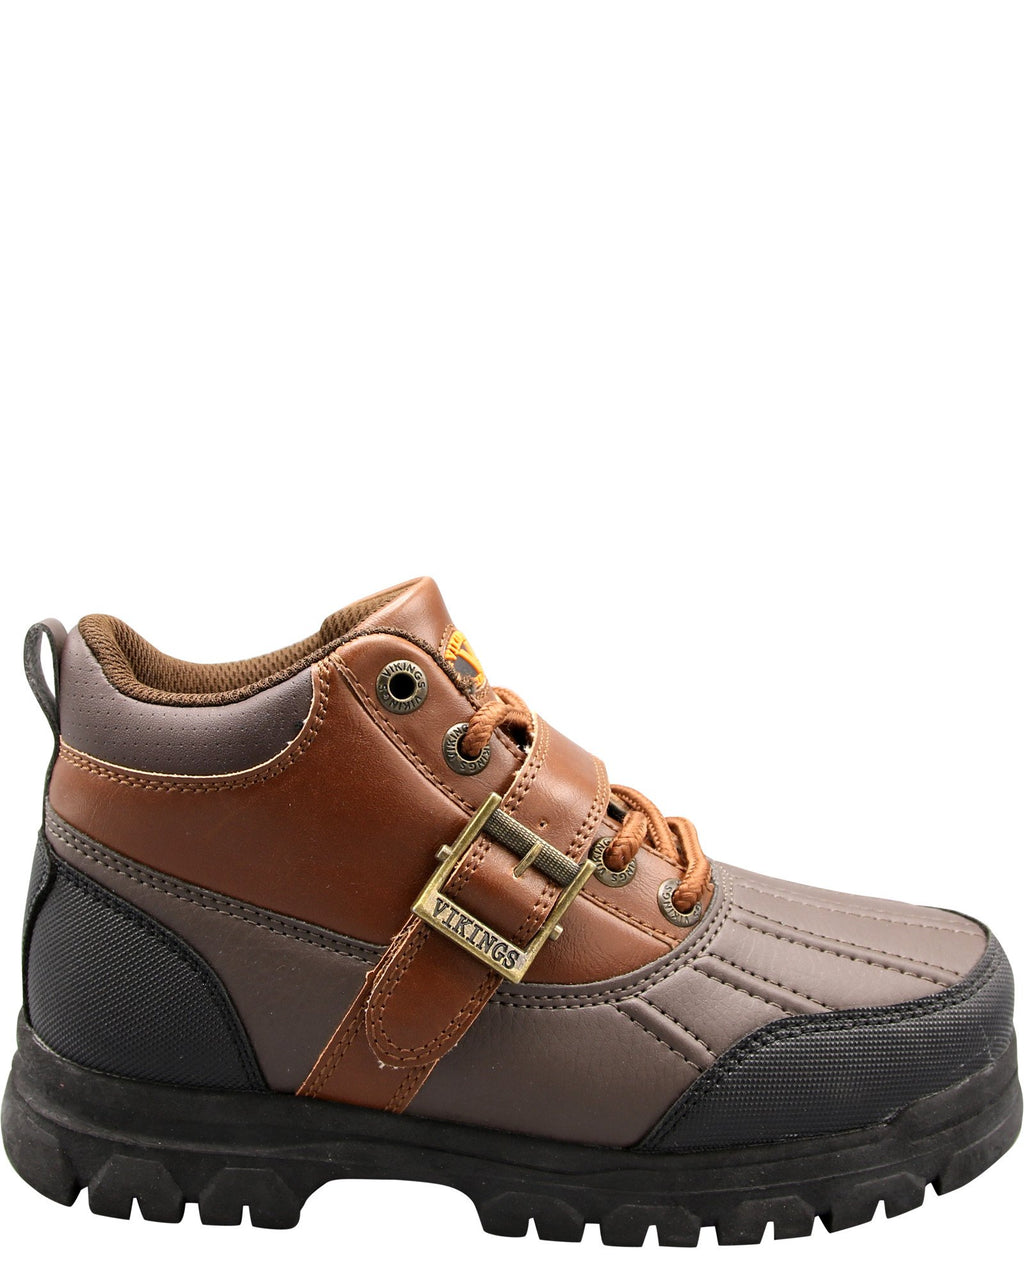 Boy's Irving Buckle Waterproof Ankle Boot (Grade School)